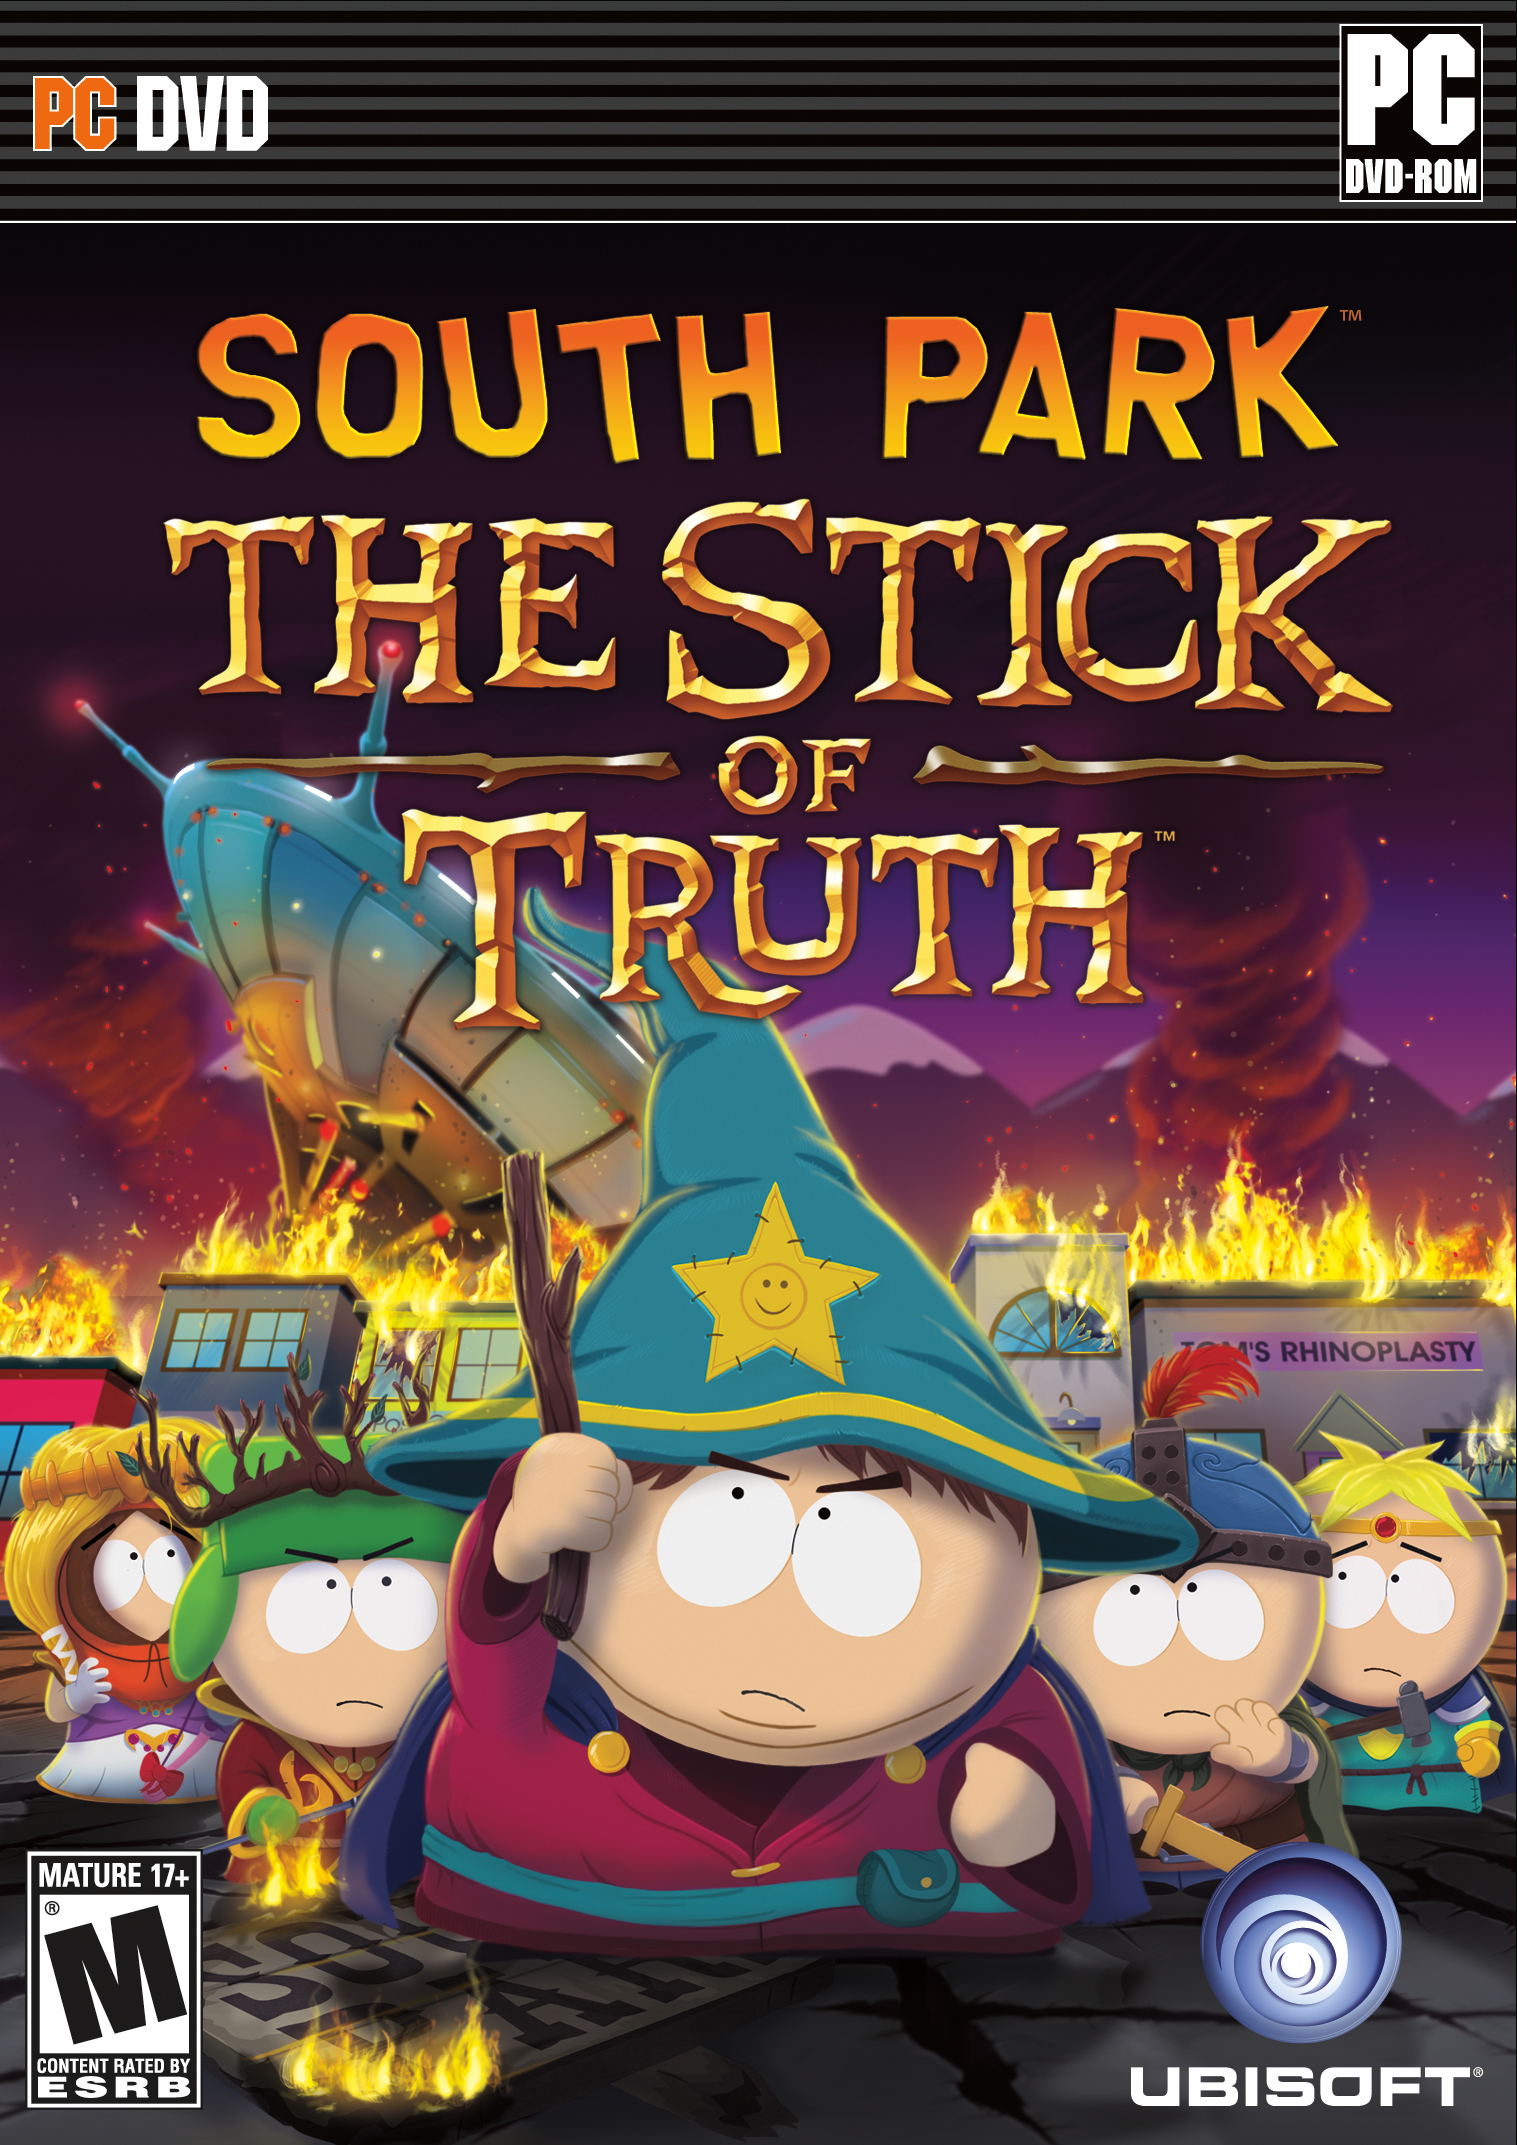 South Park Stick Of The Truth PC Game Free Download